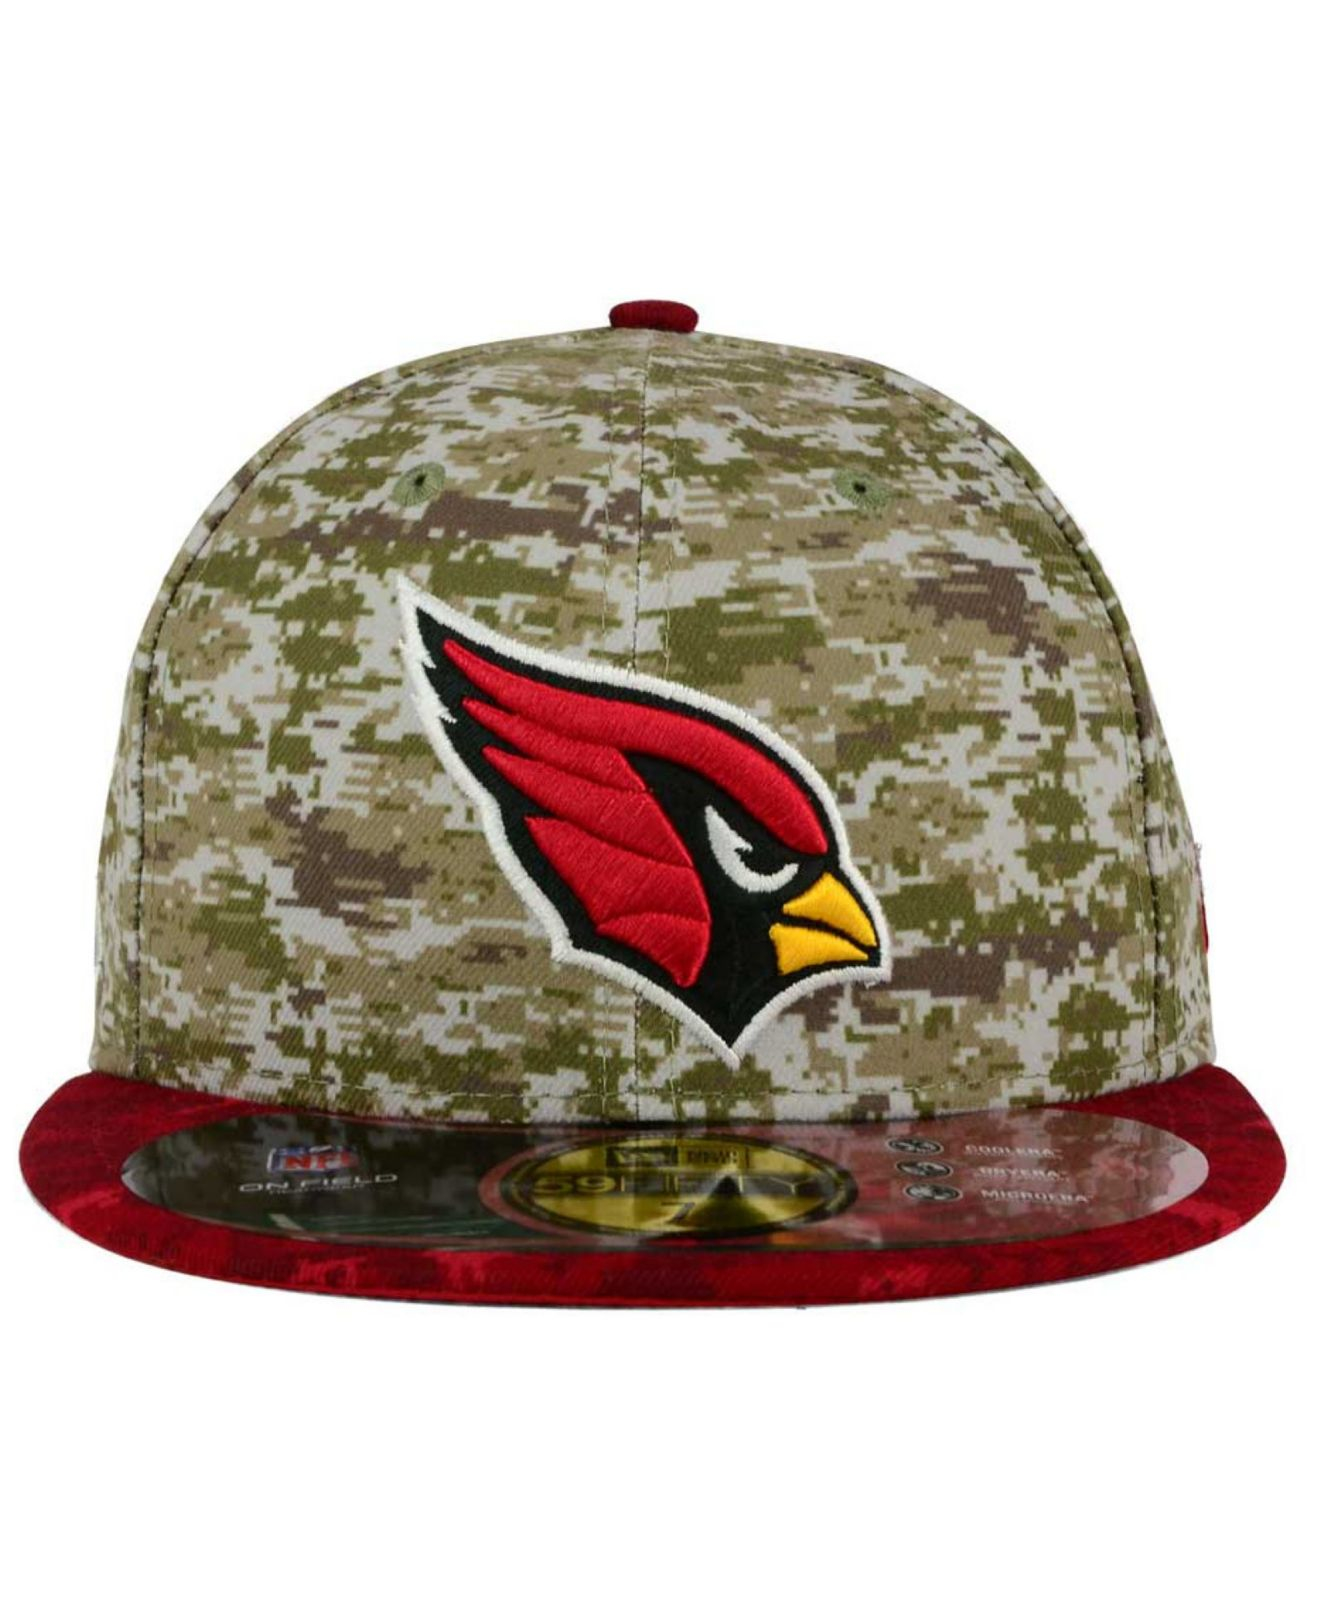 8183749fb368f9 ... usa lyst ktz arizona cardinals salute to service 59fifty cap in green  96c2a c44e8